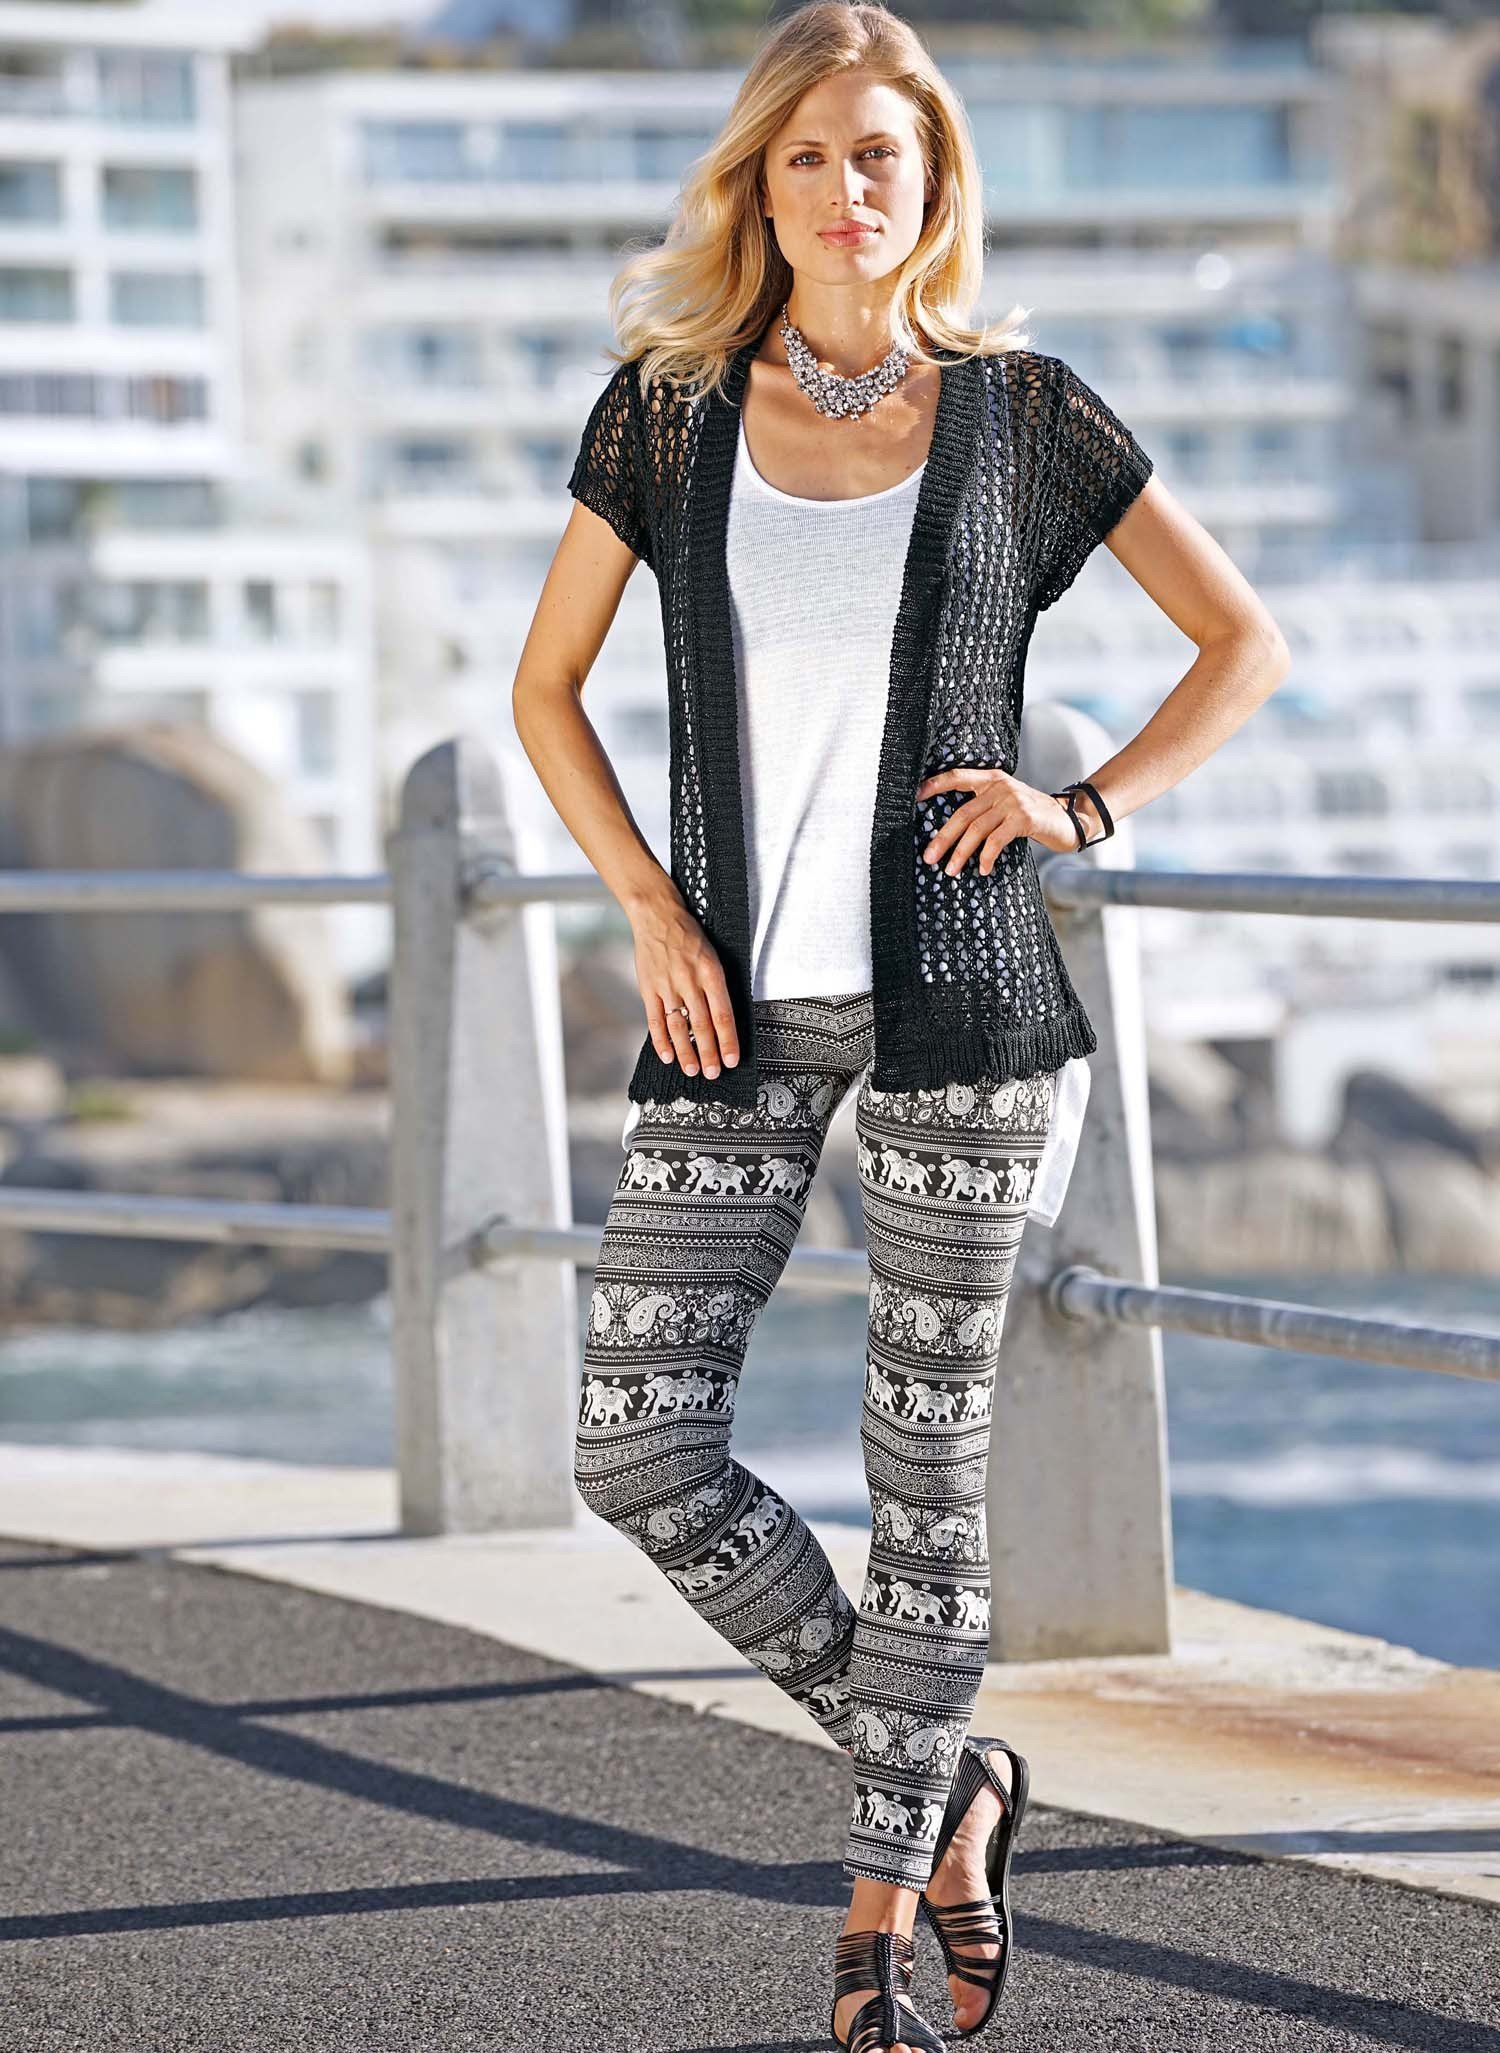 D-Leggings,Elefant schw/weiss L - 1 - Ronja.ch